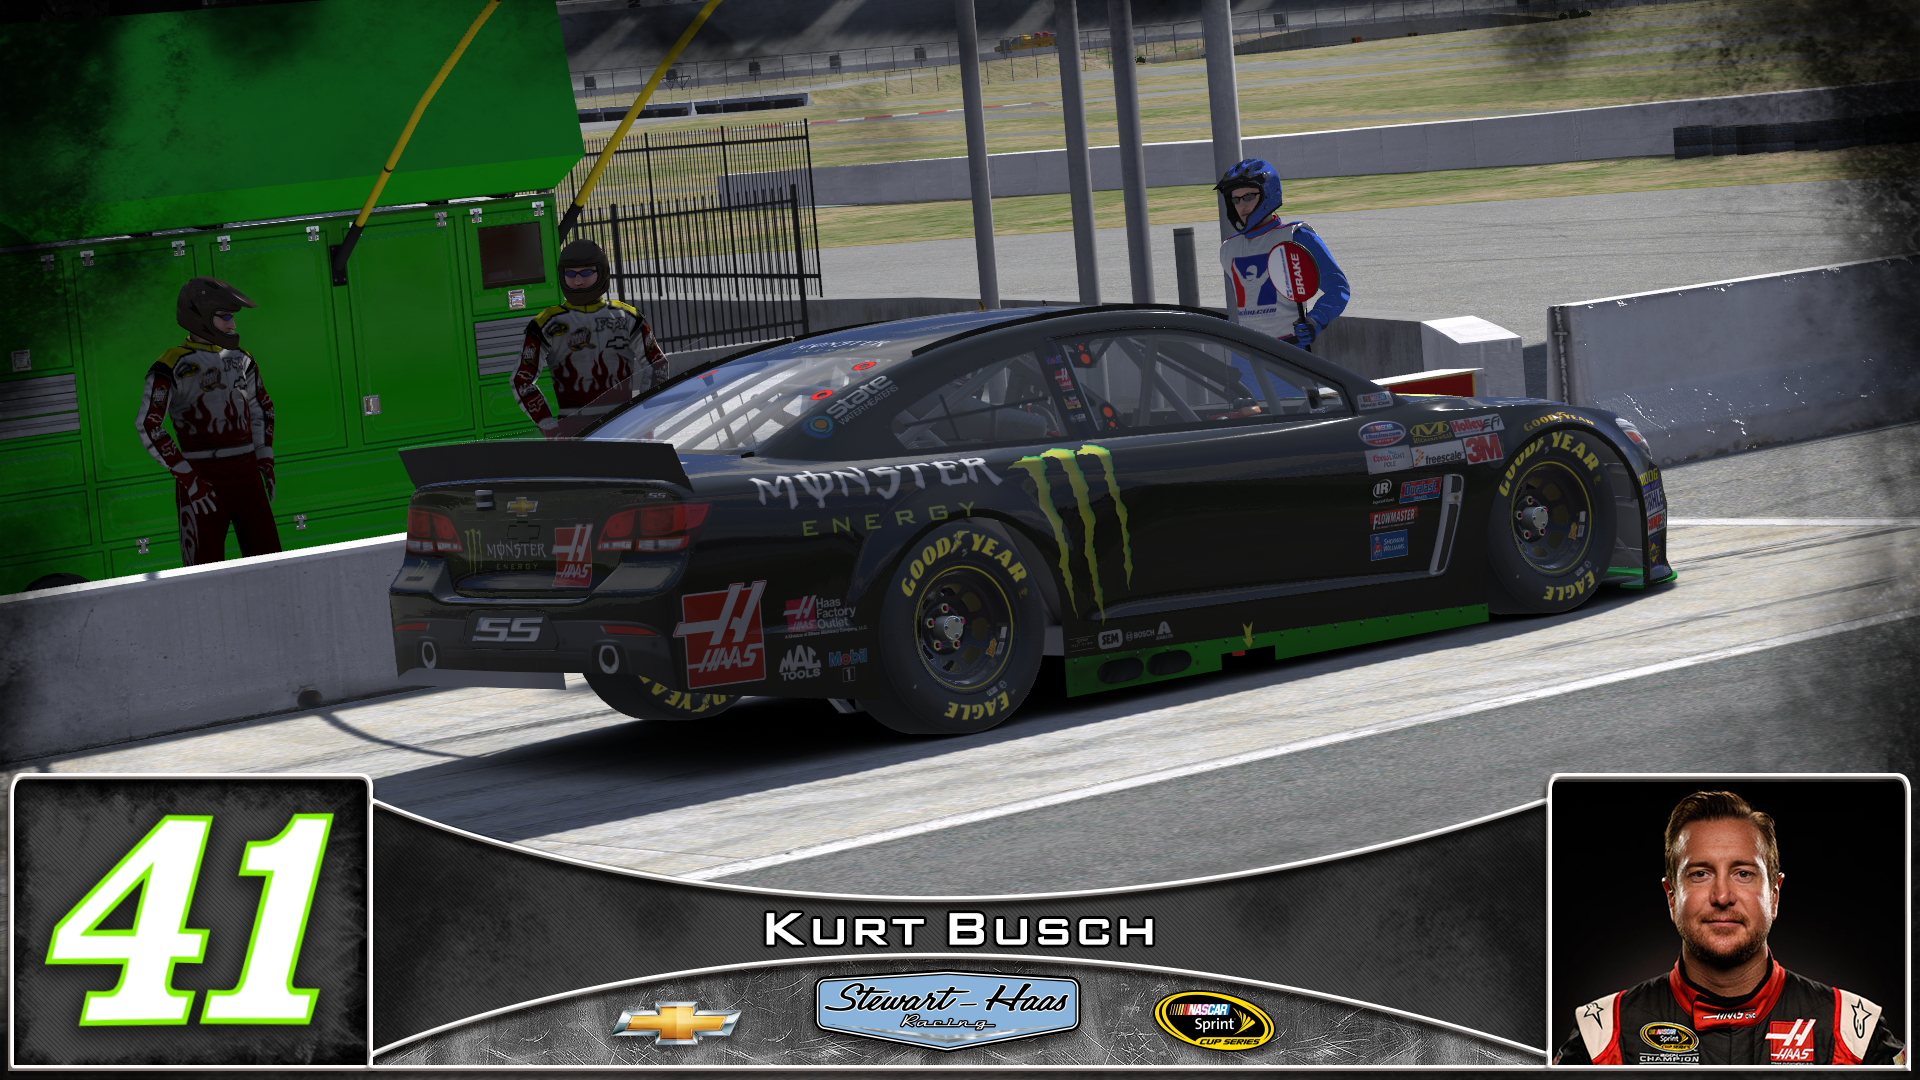 Preview of #41 Kurt Busch Monster Energy 2016 by Udo Washeim